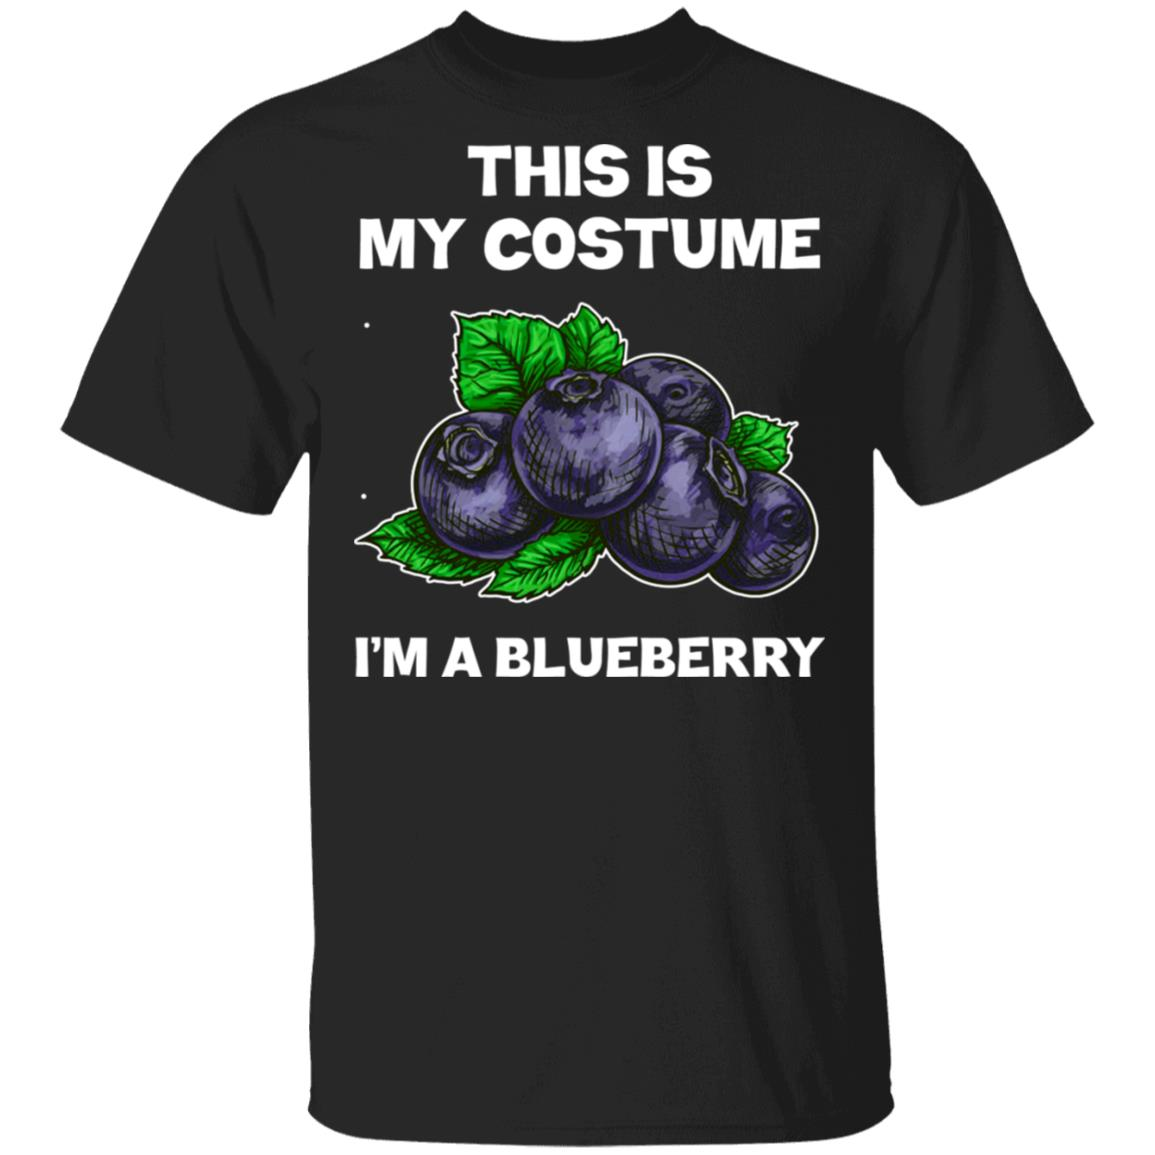 I'm A Blueberry This Is My Costume Unisex Short Sleeve